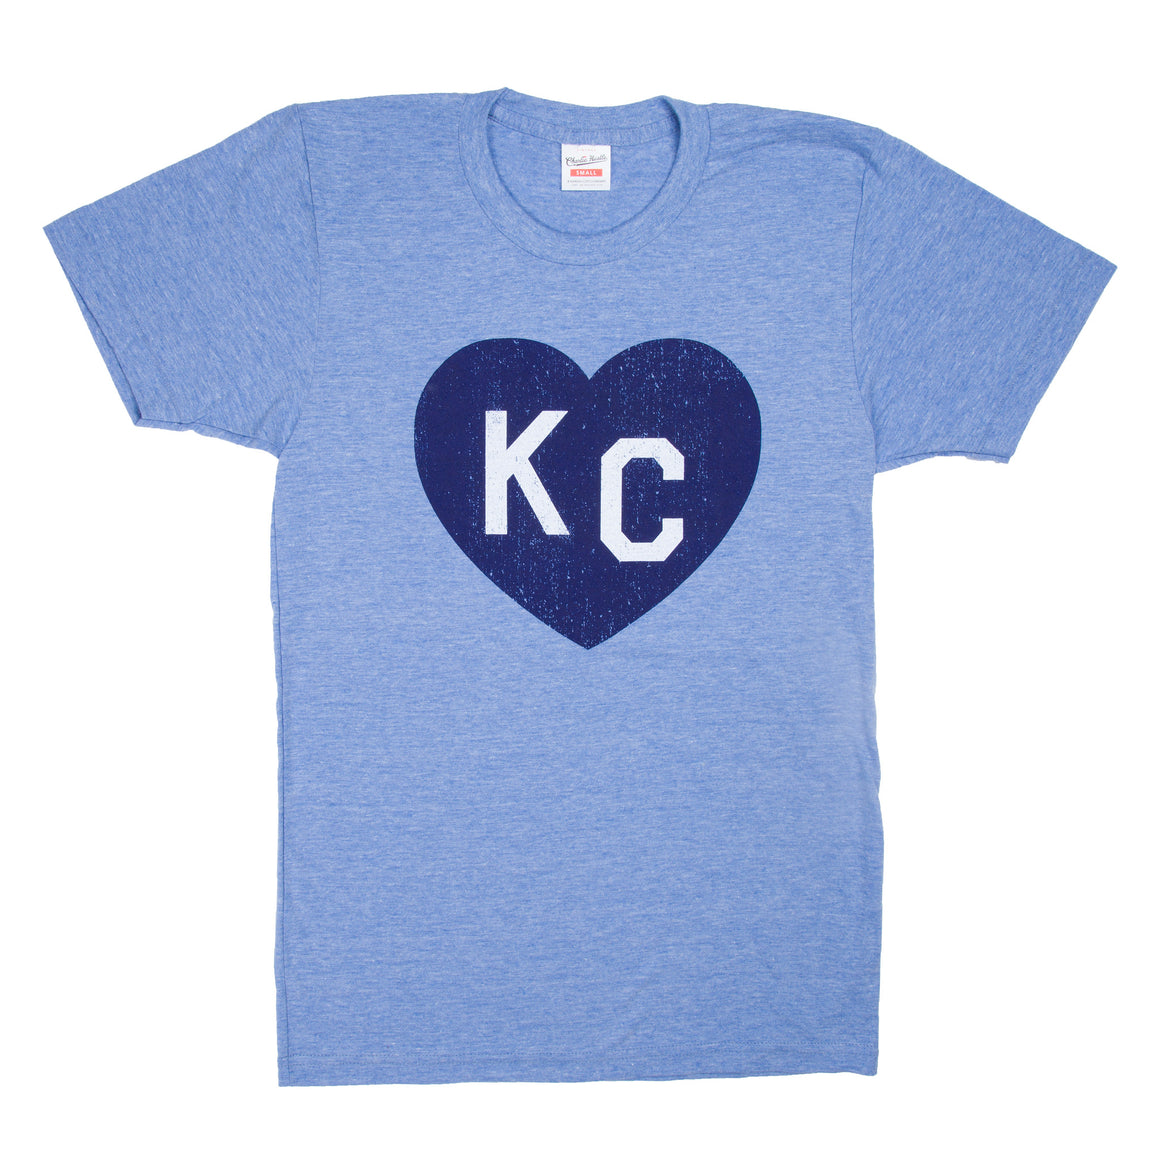 CHARLIE HUSTLE | KC HEART T-SHIRT - LIGHT BLUE